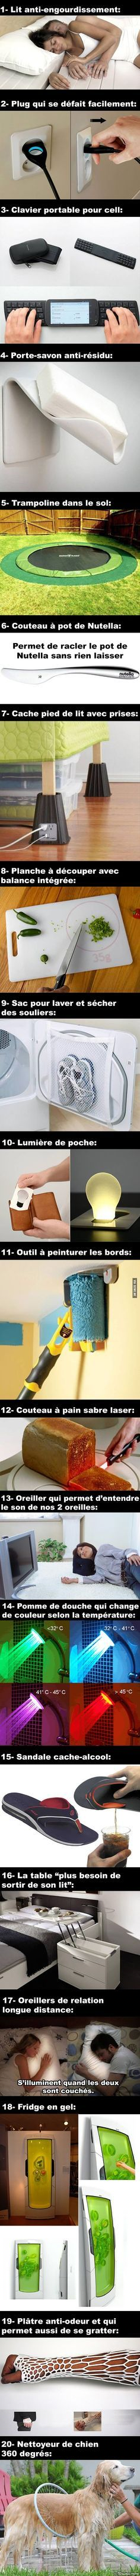 20 Inventions dont on a trop besoin Québec Meme